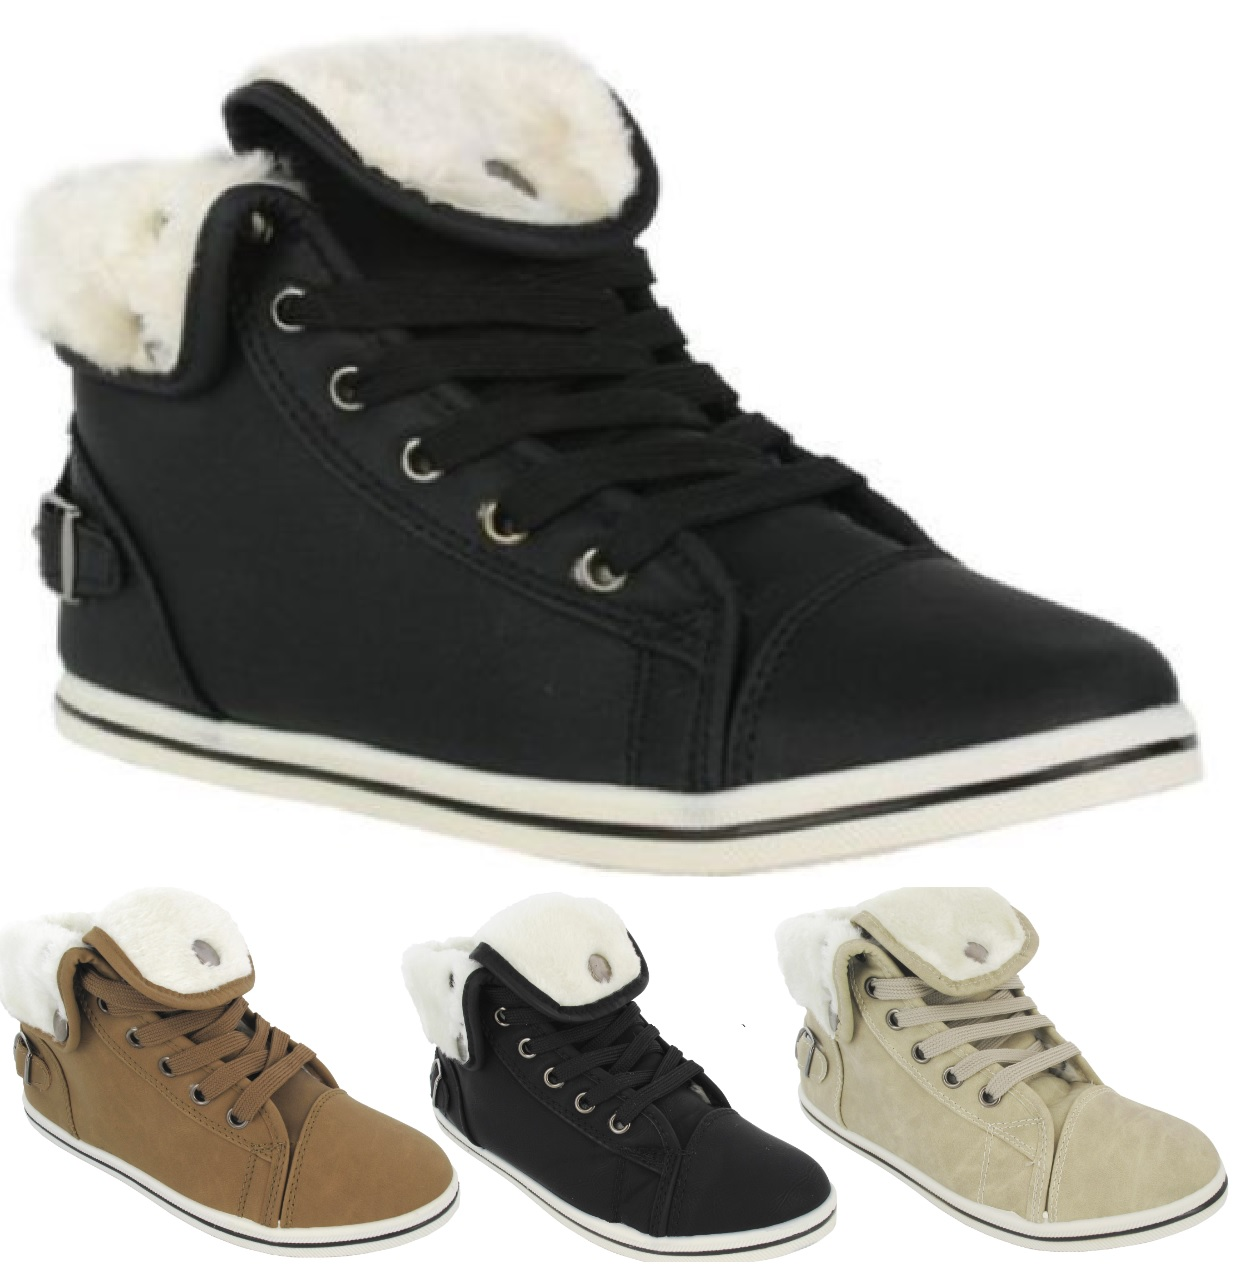 LADIES FAUX FUR HI TOP WOMENS WINTER WARM ANKLE BOOTS TRAINERS SHOES SIZE 3-9